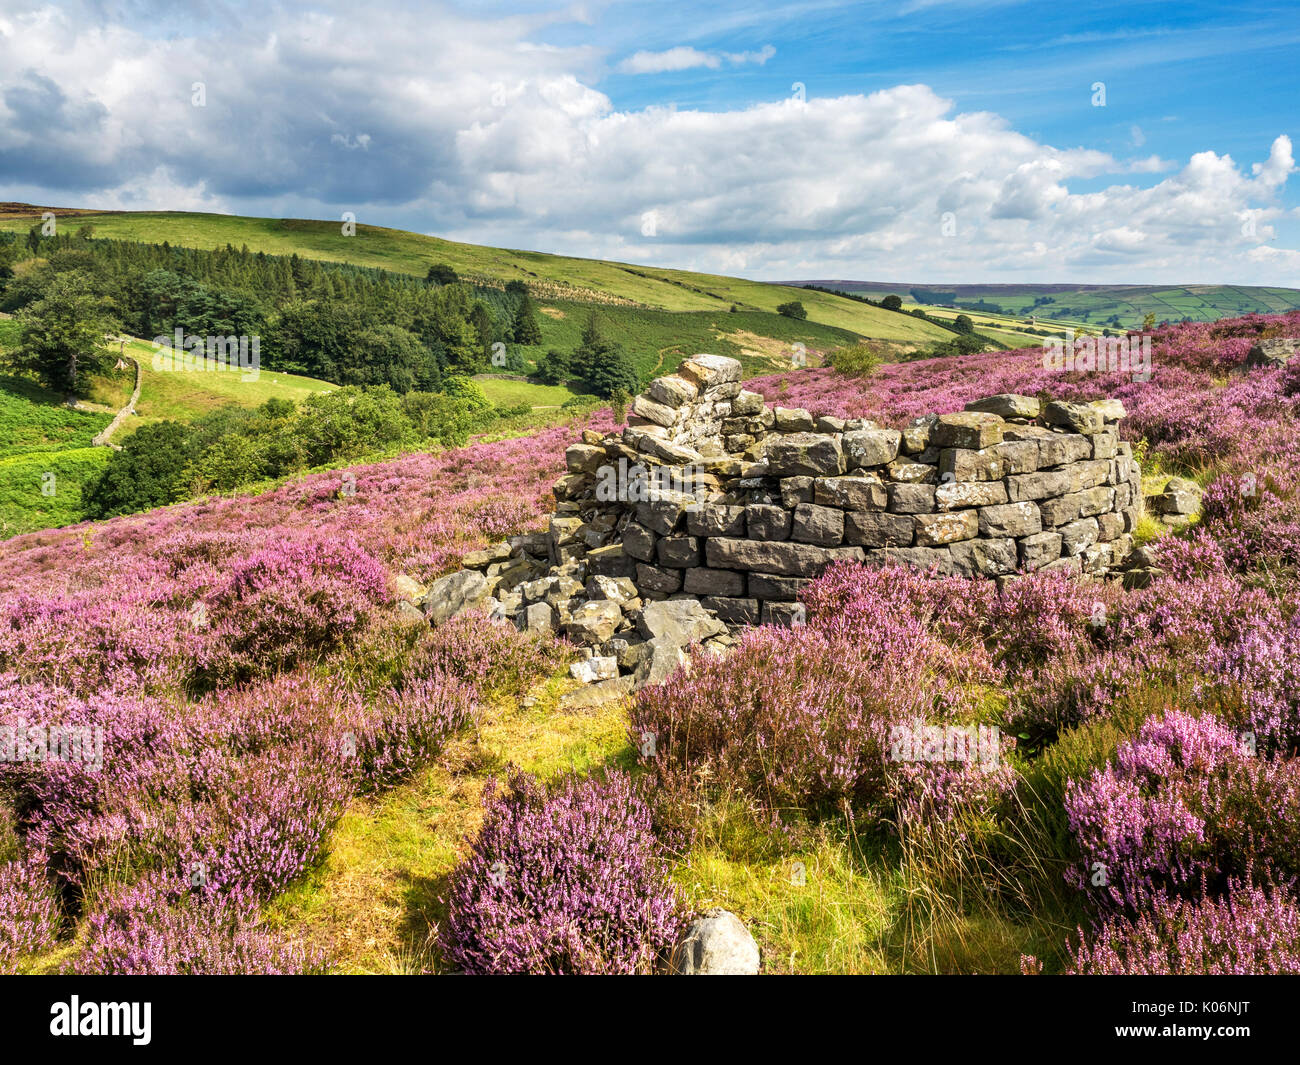 Ruins of a Beehive Condenserat Prosperous Lead Smelting Mill near Pateley Bridge Nidderdale AONB Yorkshire England - Stock Image